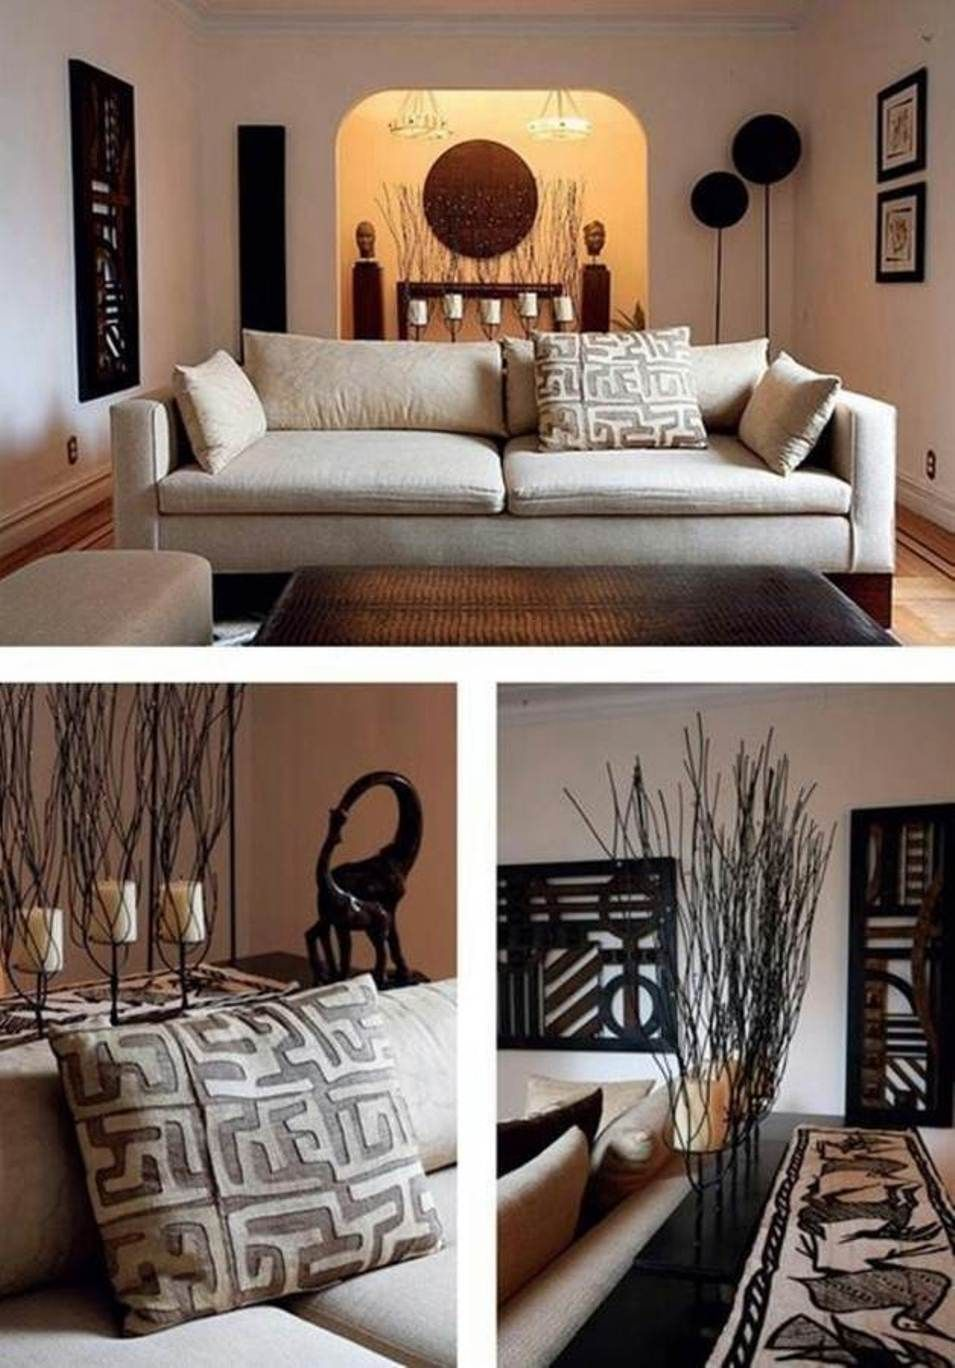 south-african-decorating-ideas (955×1368) (with images